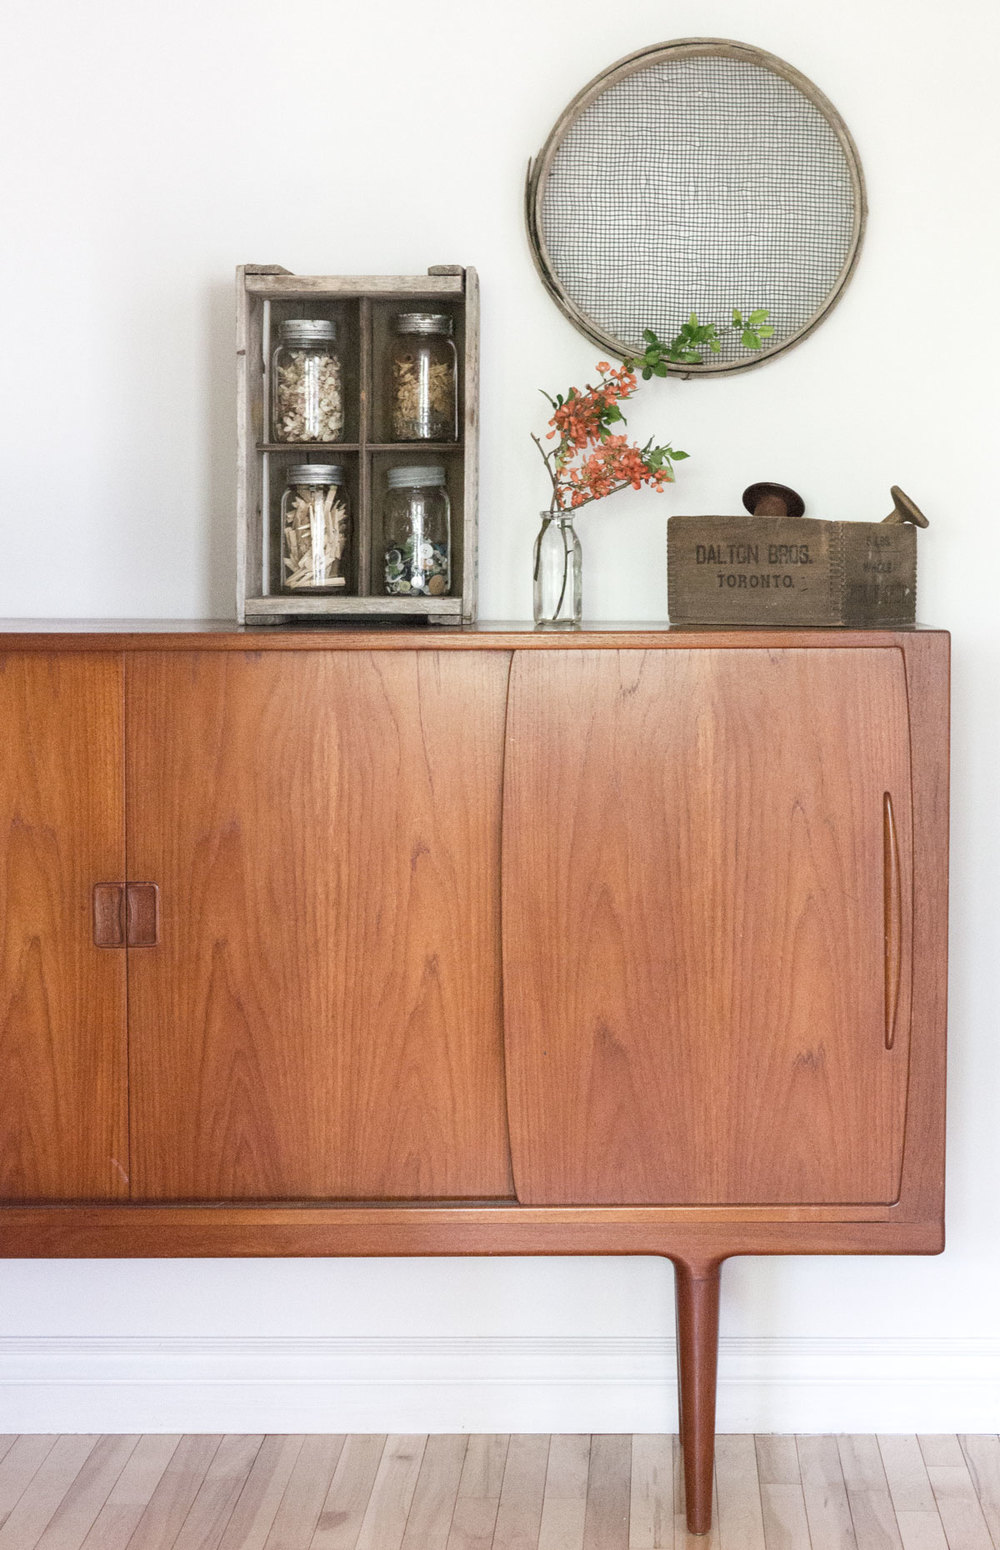 How to Style a Simple Vignette